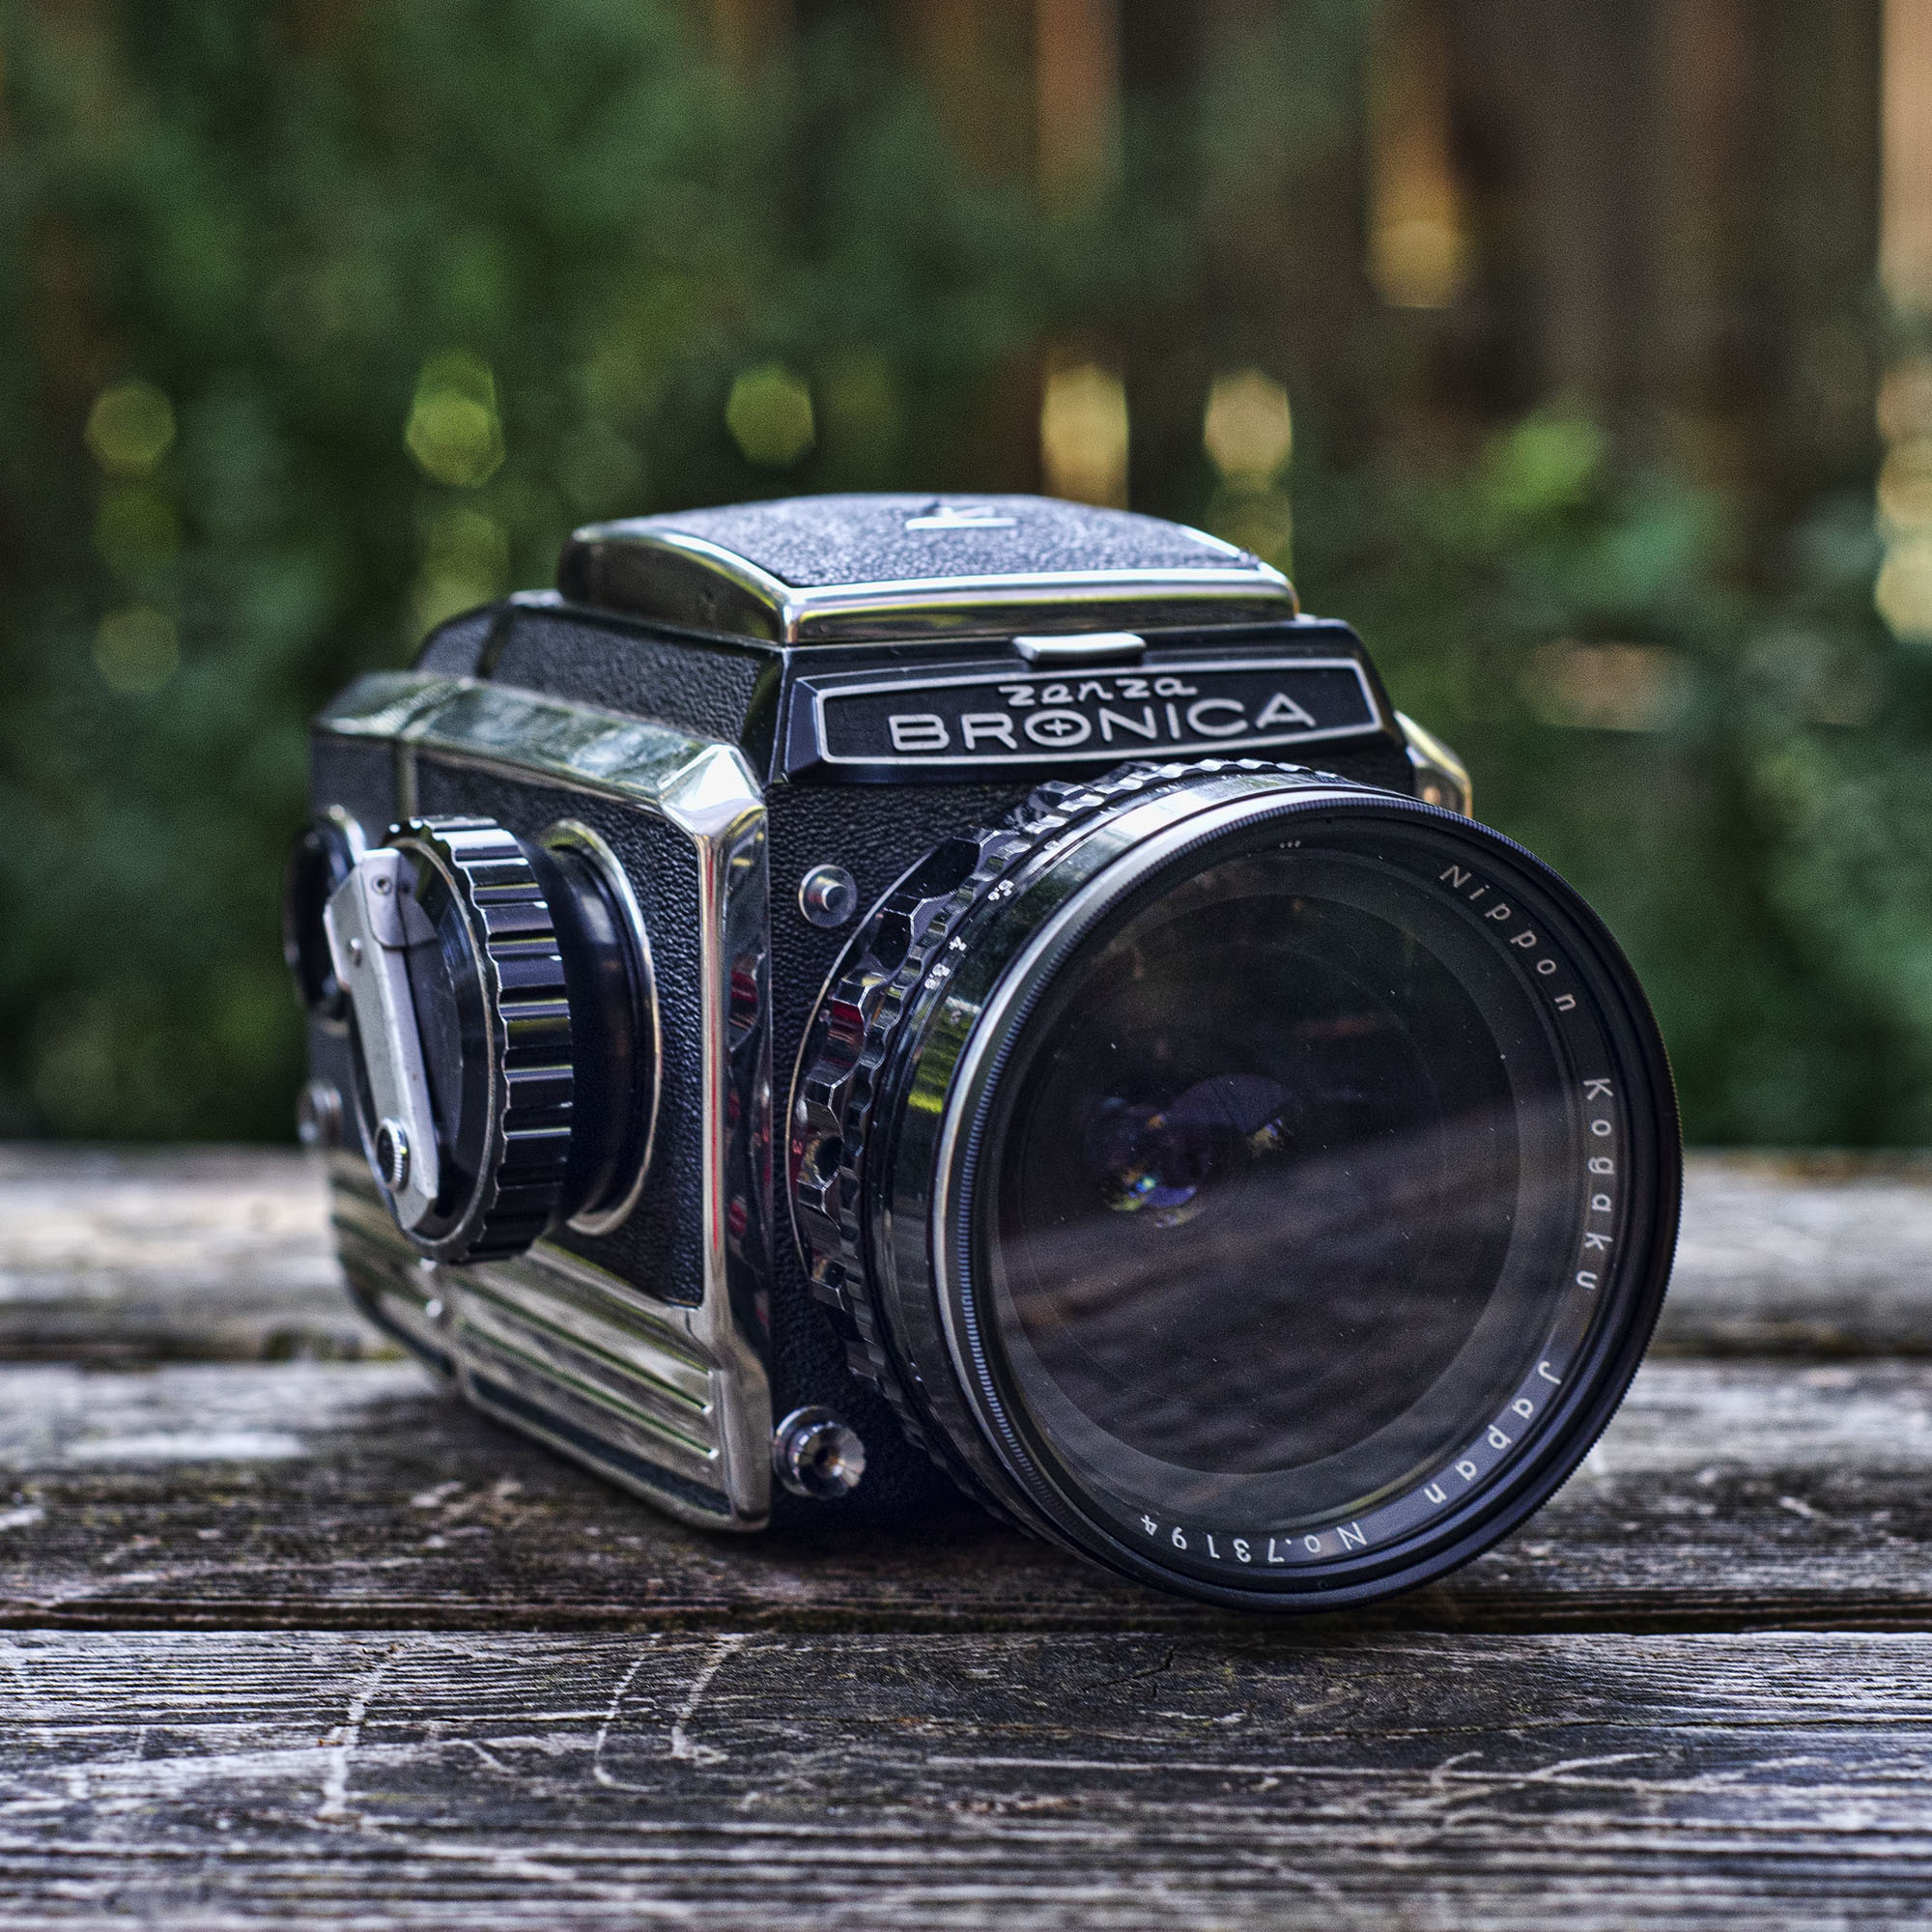 Bronica S2 with Nikkor H lens